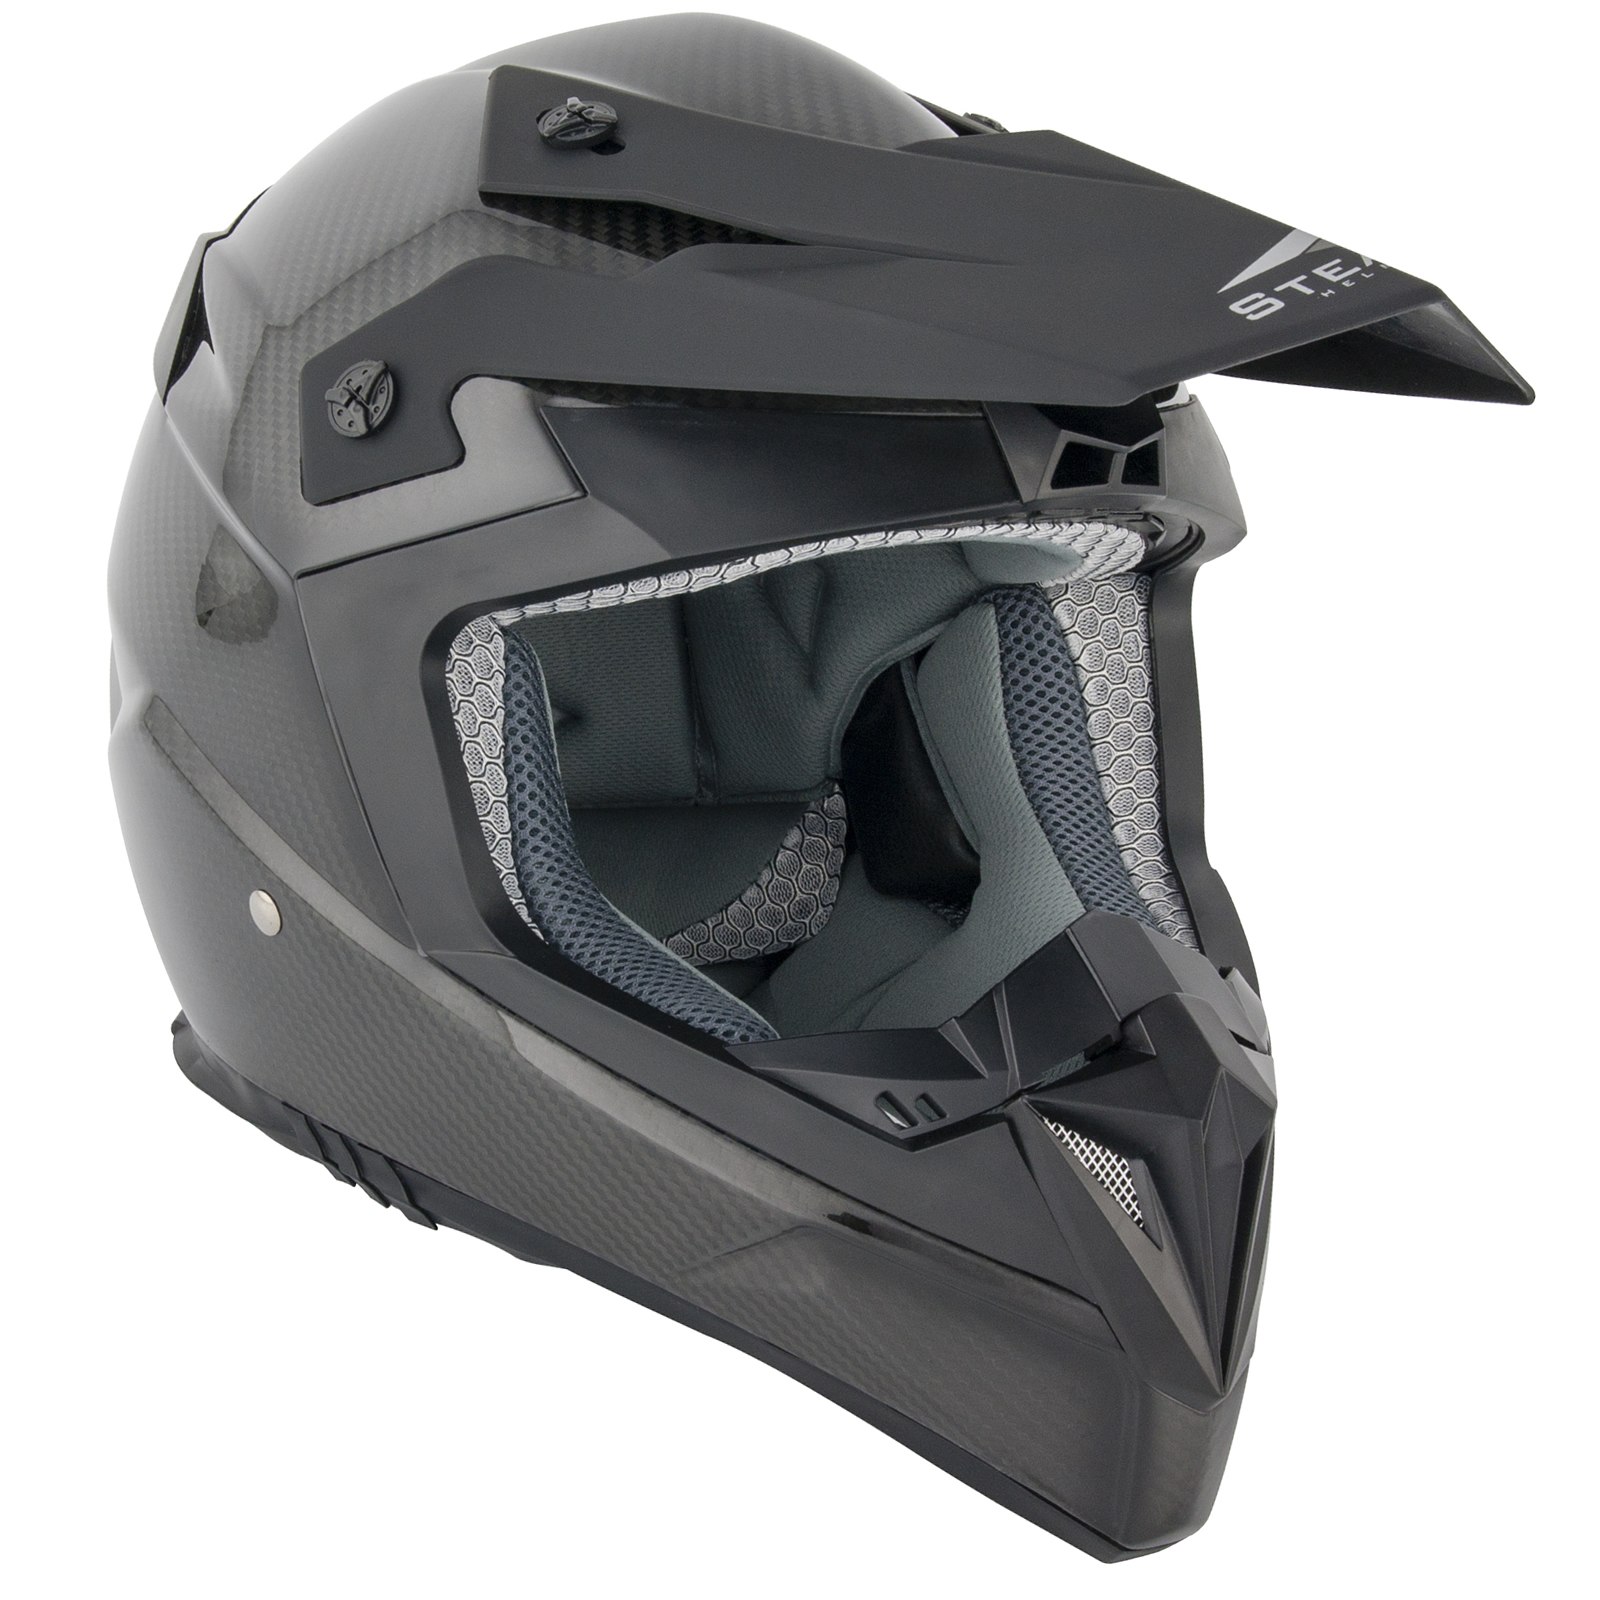 stealth hd210 kohlenfaser leicht mx motocross helm carbon. Black Bedroom Furniture Sets. Home Design Ideas